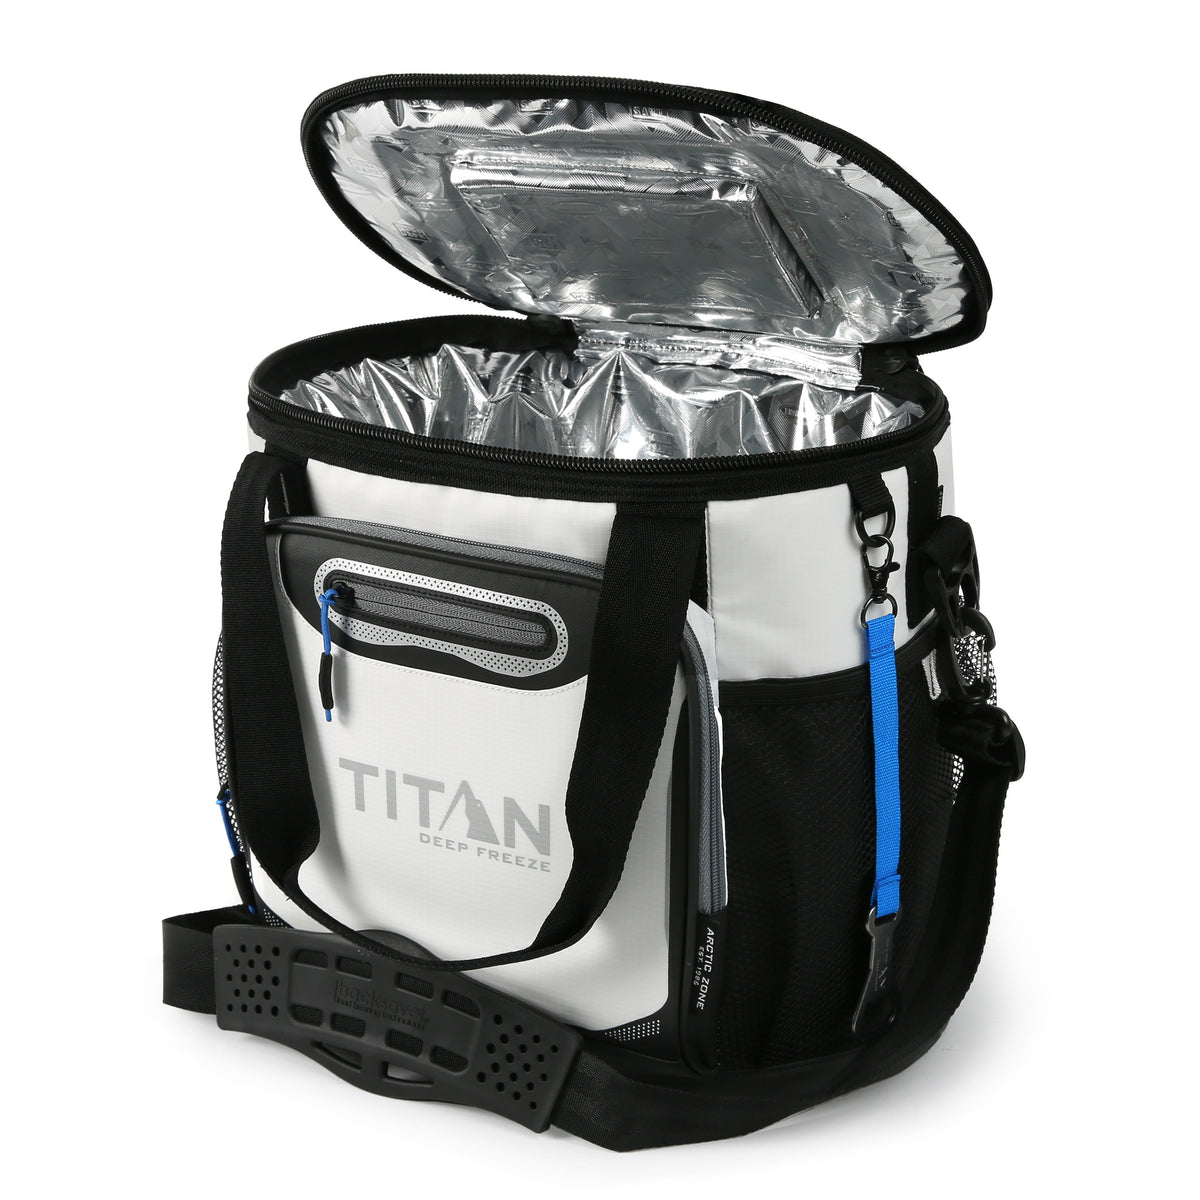 Titan Deep Freeze® 24 Can Bucket Tote - White - Open, empty